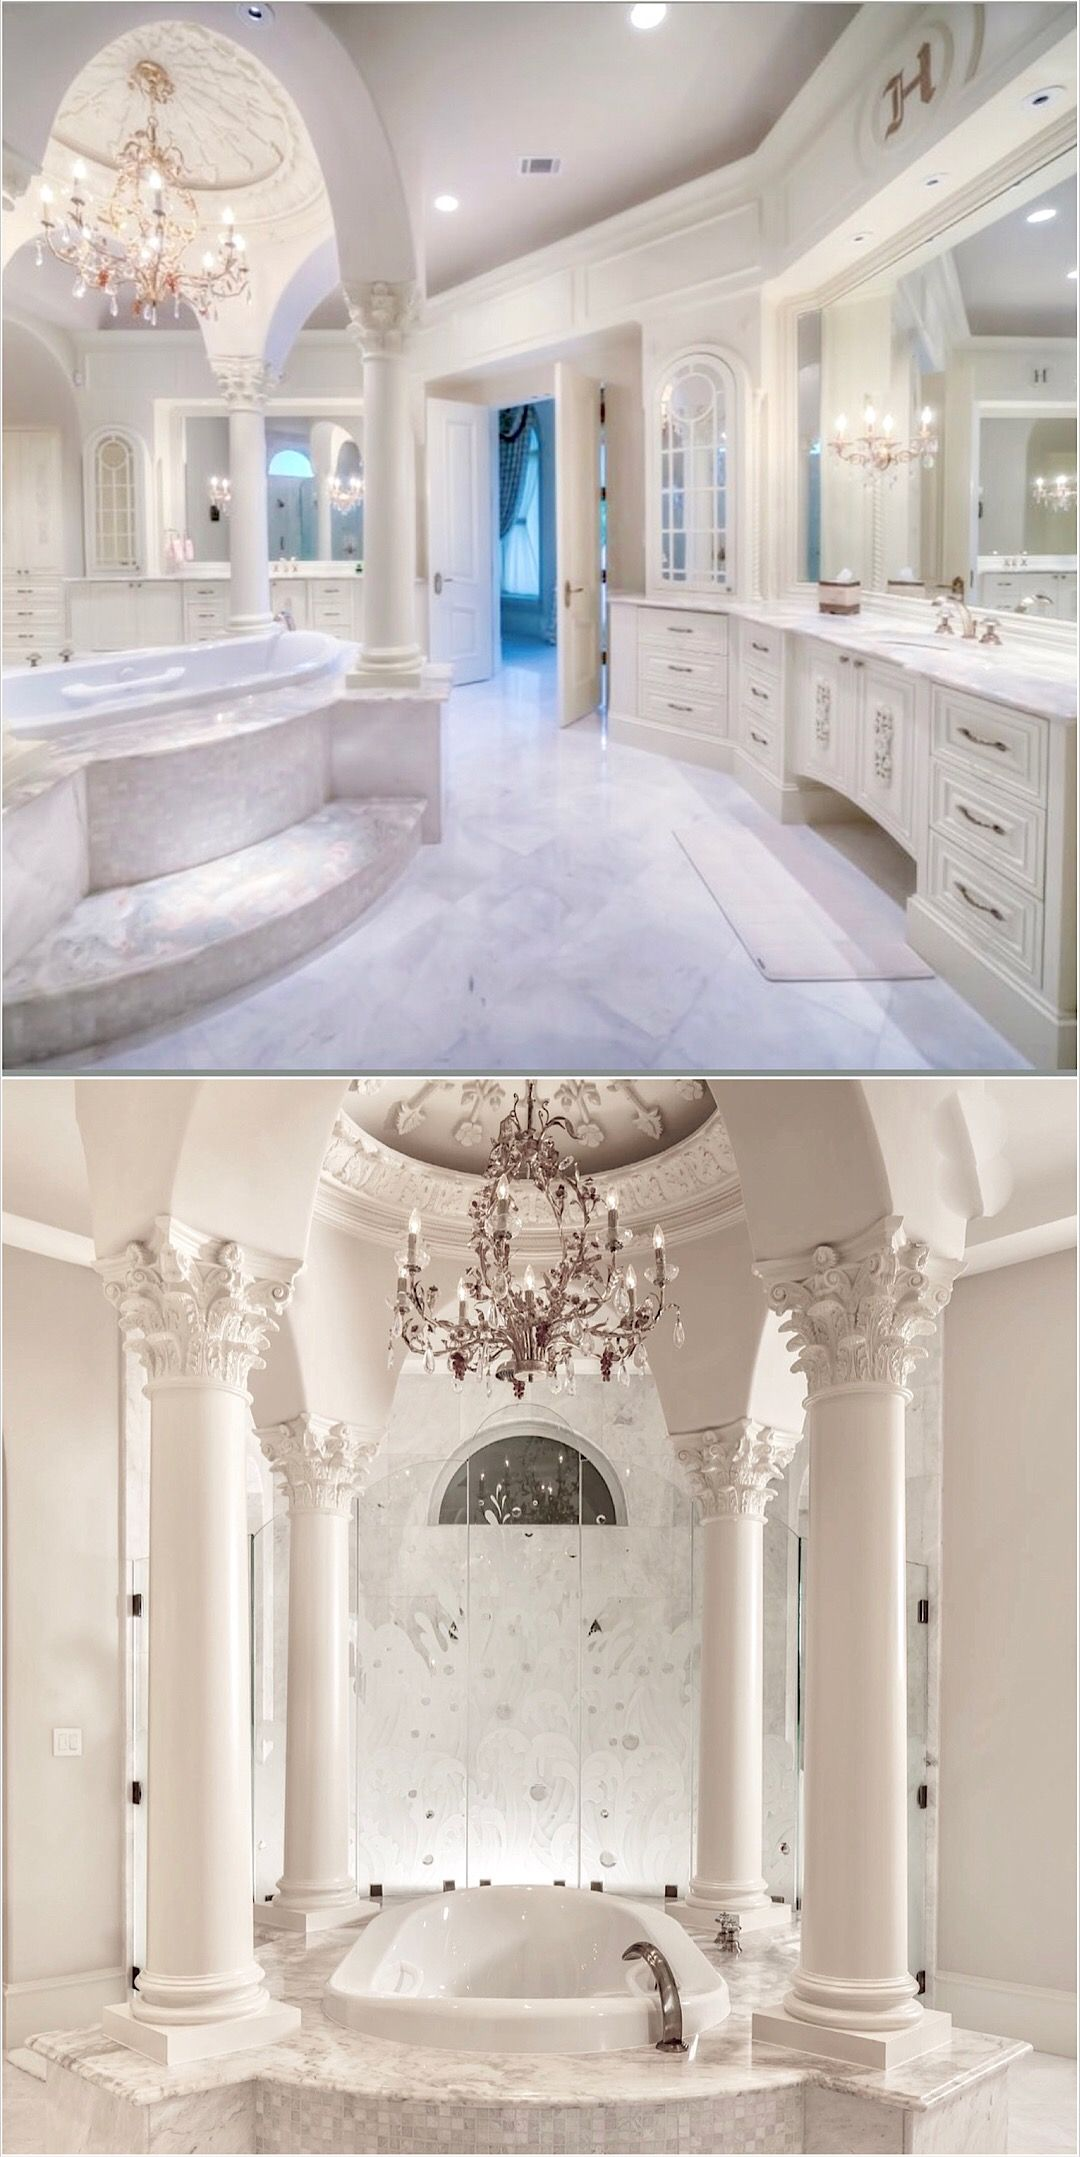 So so attracted to this Master Bathroom Design | CALGON take me away Houzz Master Bathroom Designs on houzz small bathroom designs, modern bathroom tile shower designs, luxury traditional bathroom designs, green master bathroom designs, blue master bathroom designs, modern master bathroom designs, google master bathroom designs, tumblr master bathroom designs, traditional master bathroom designs, diy master bathroom designs,